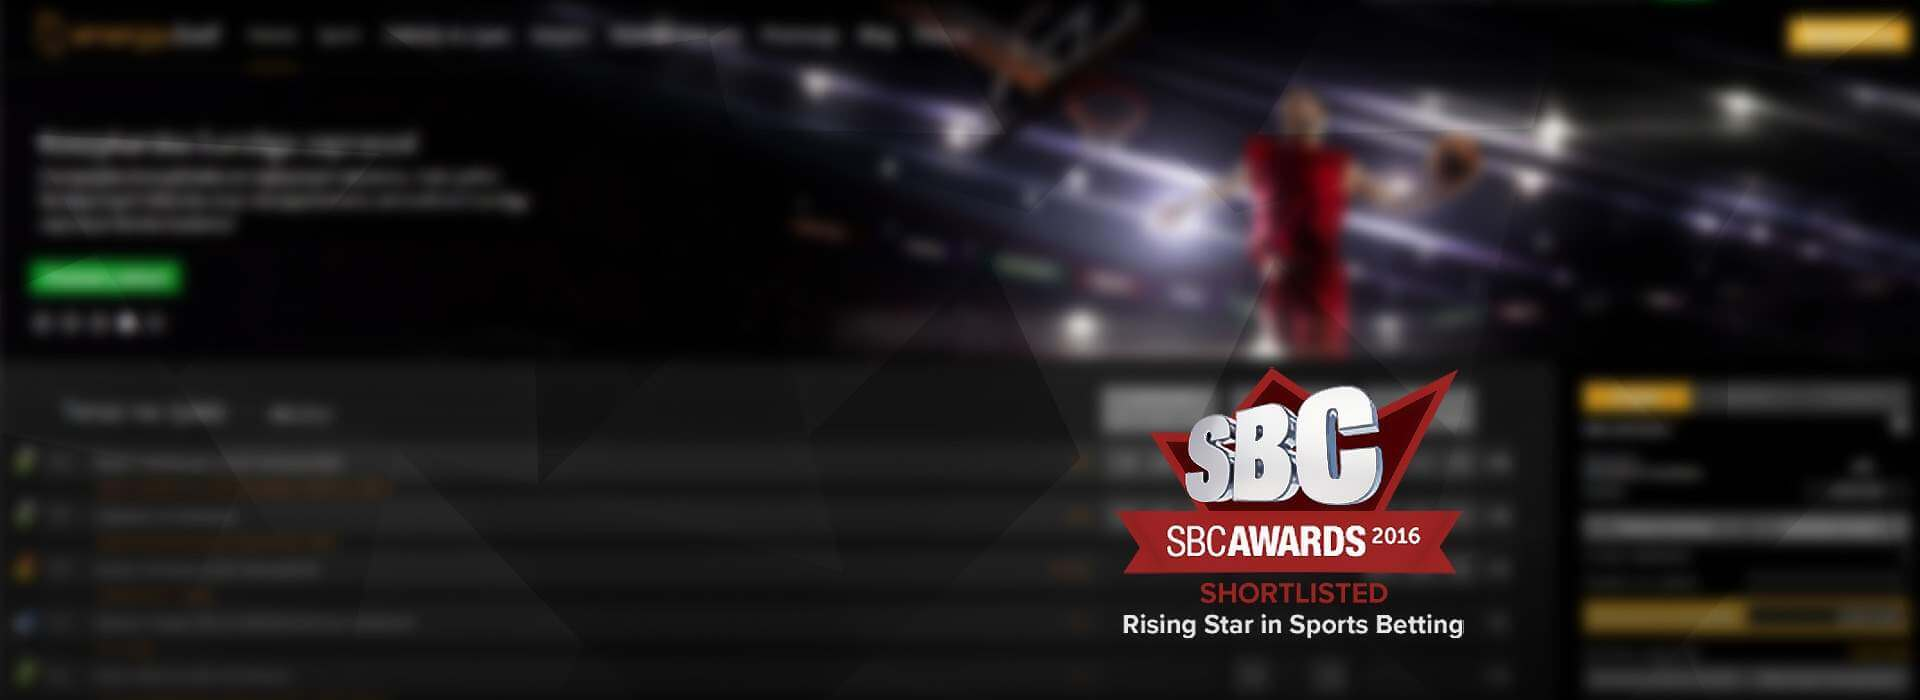 EnergyBet Shortlisted for SBC Awards 2016 'Rising Star in Sports Betting'